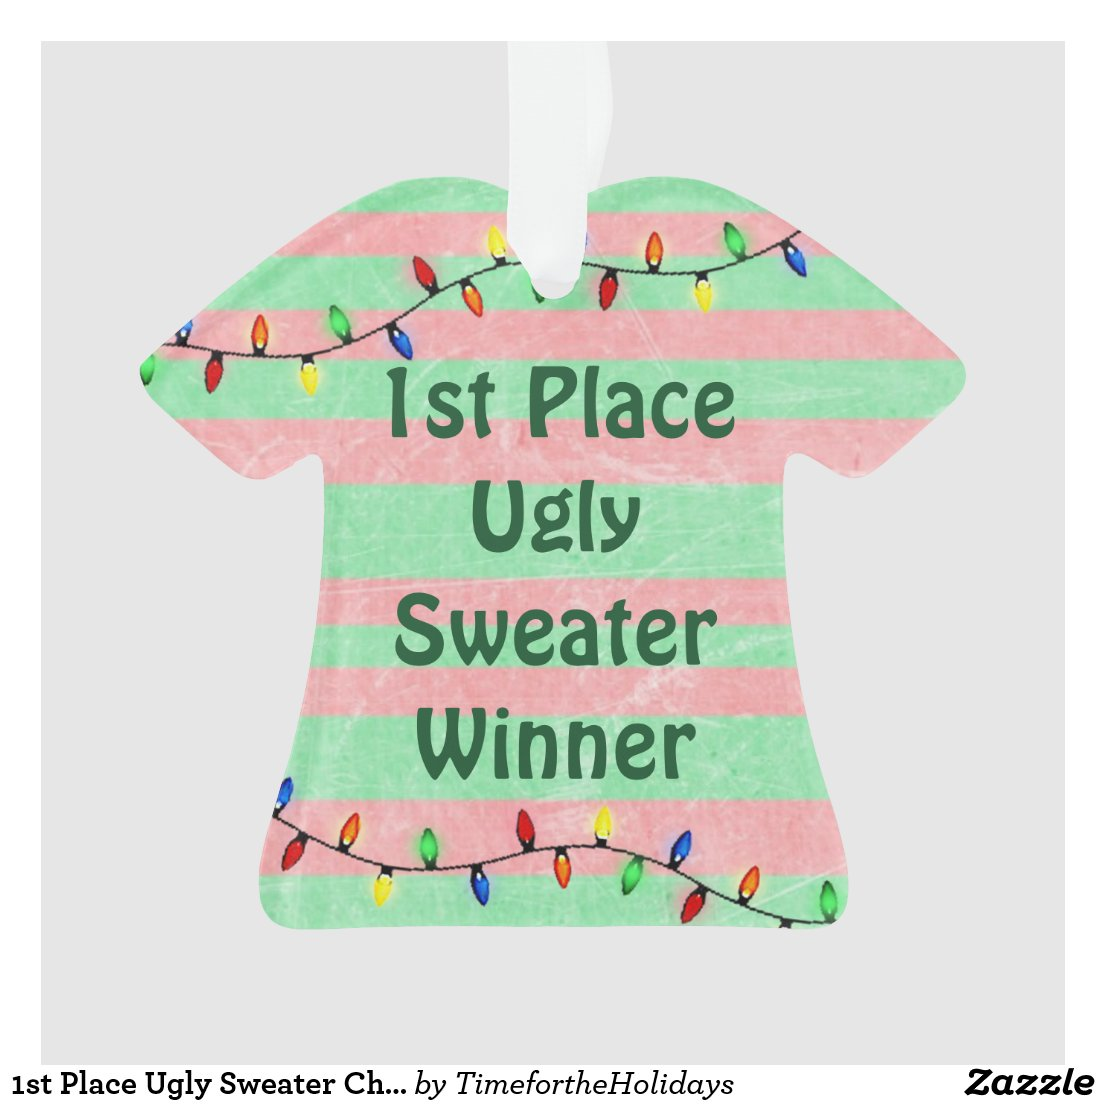 1st Place Ugly Sweater Christmas Ornament